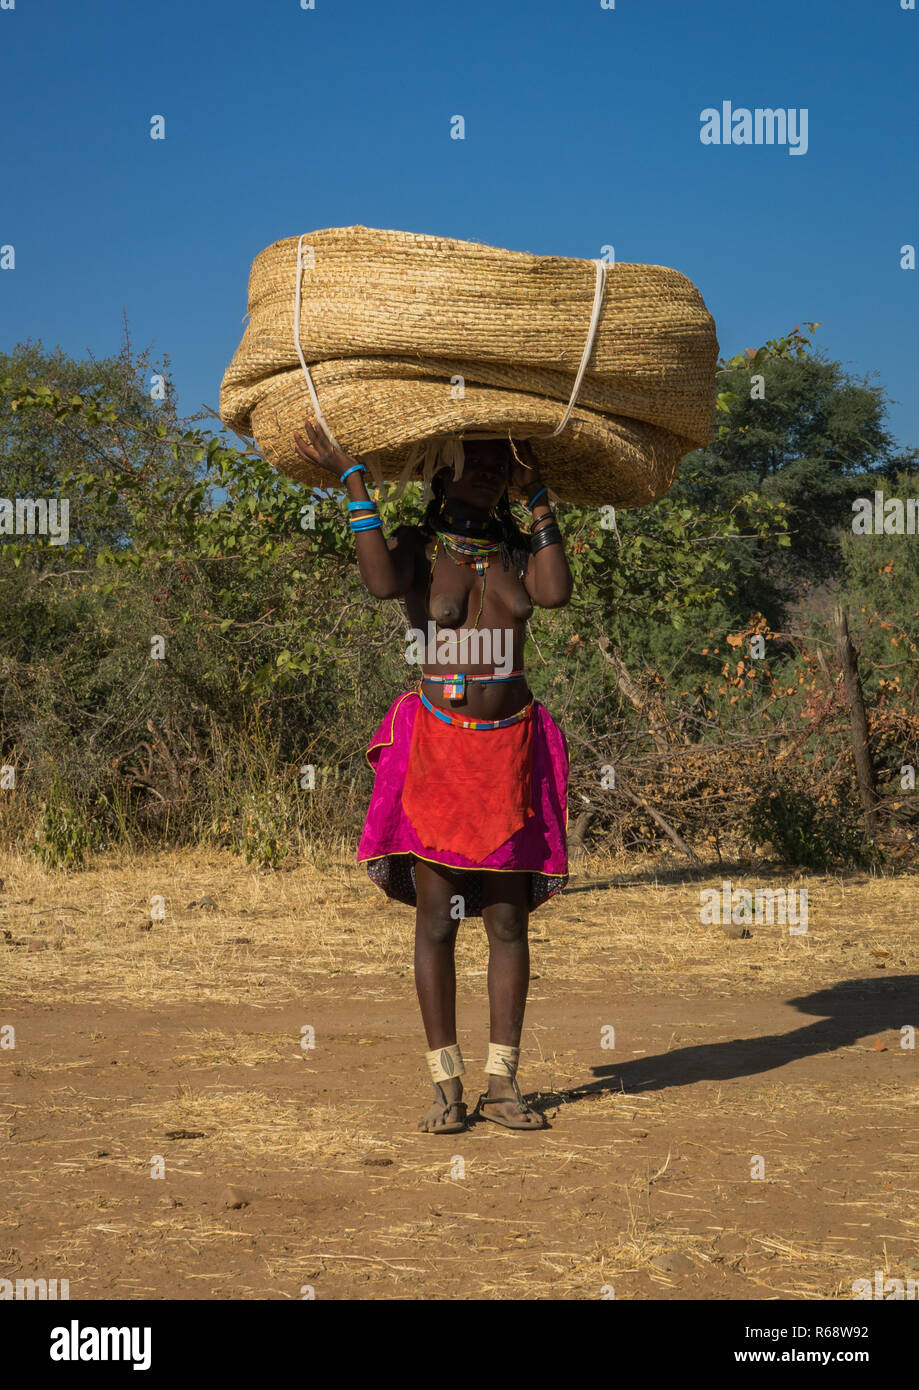 Muhakaona tribe woman carrying a basket on her head, Cunene Province, Oncocua, Angola - Stock Image